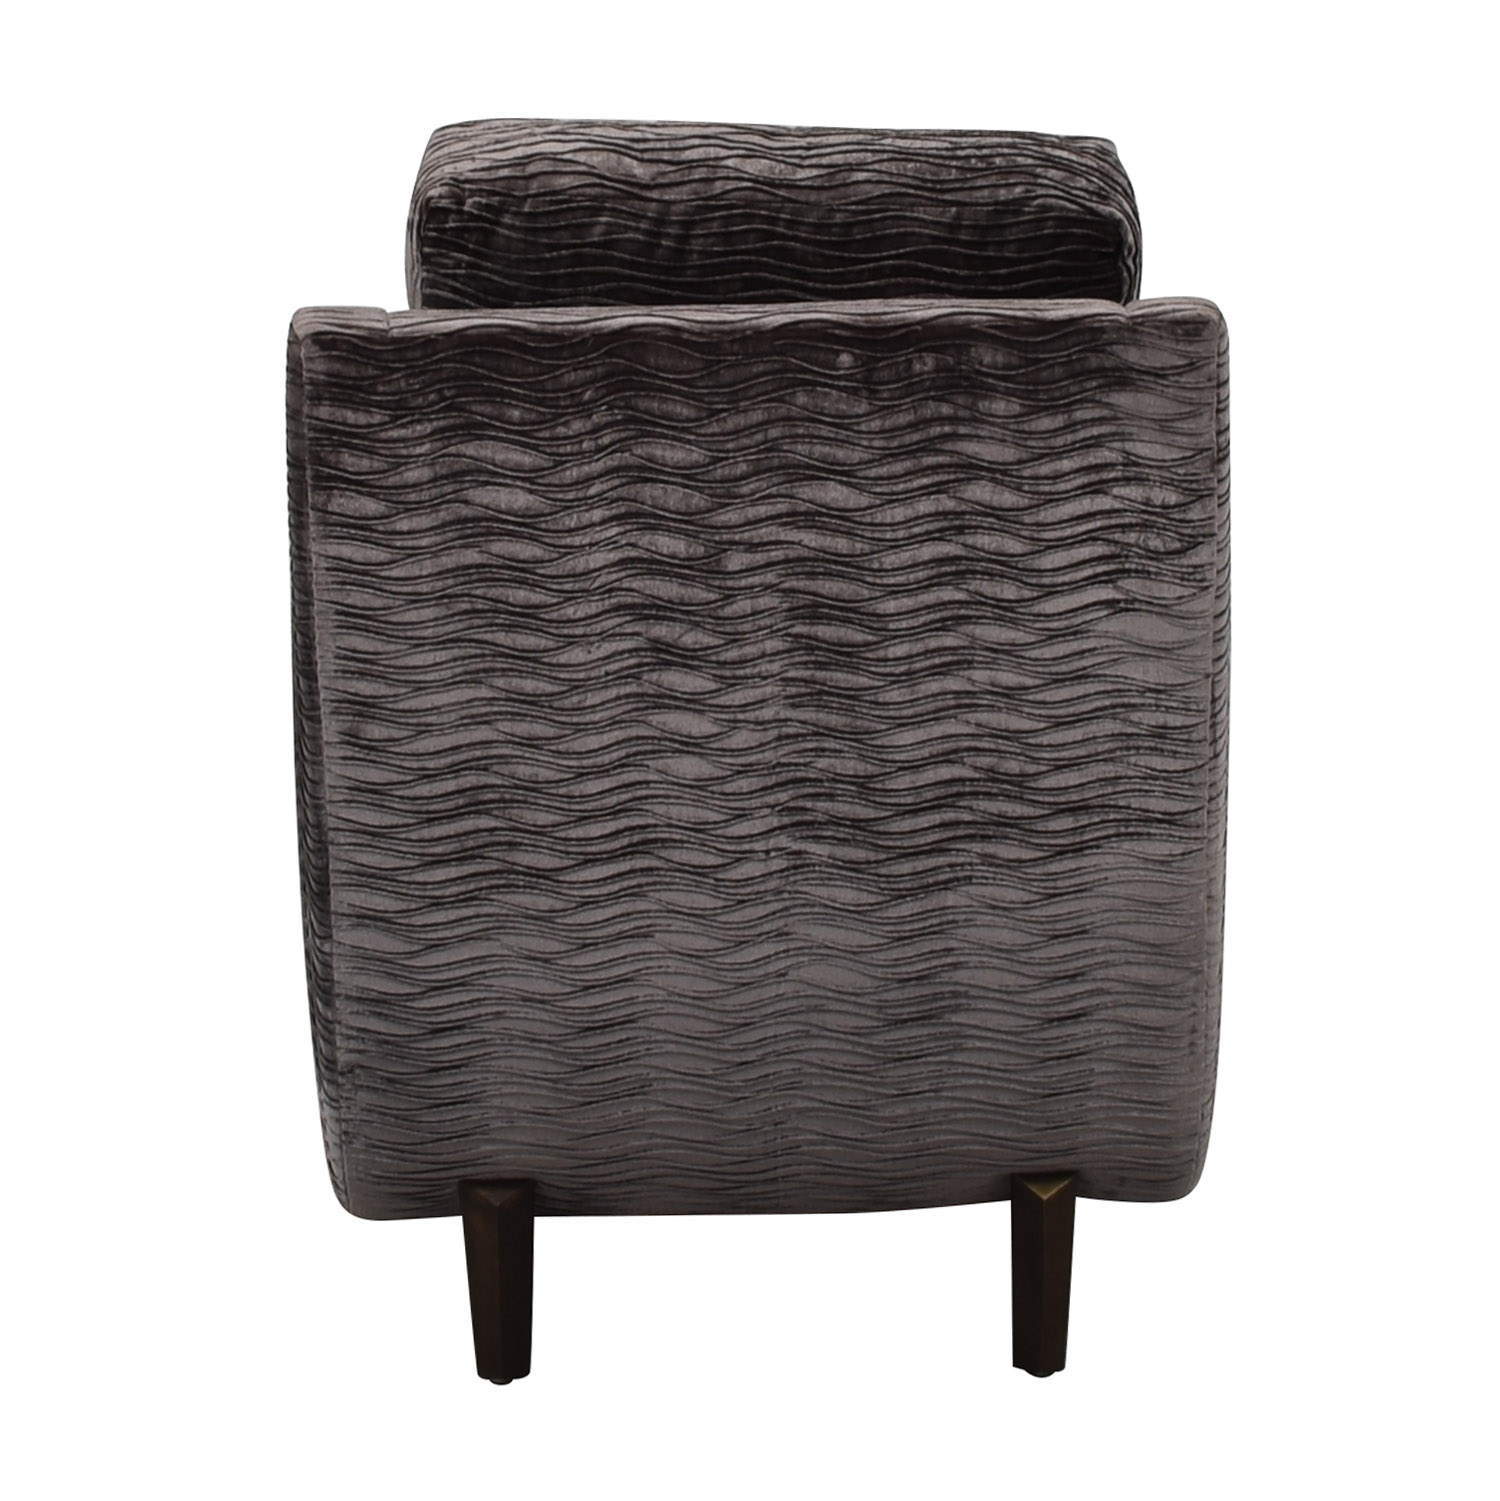 Furniture Masters Furniture Masters Grey Wave Upholstered Accent Chair Chairs